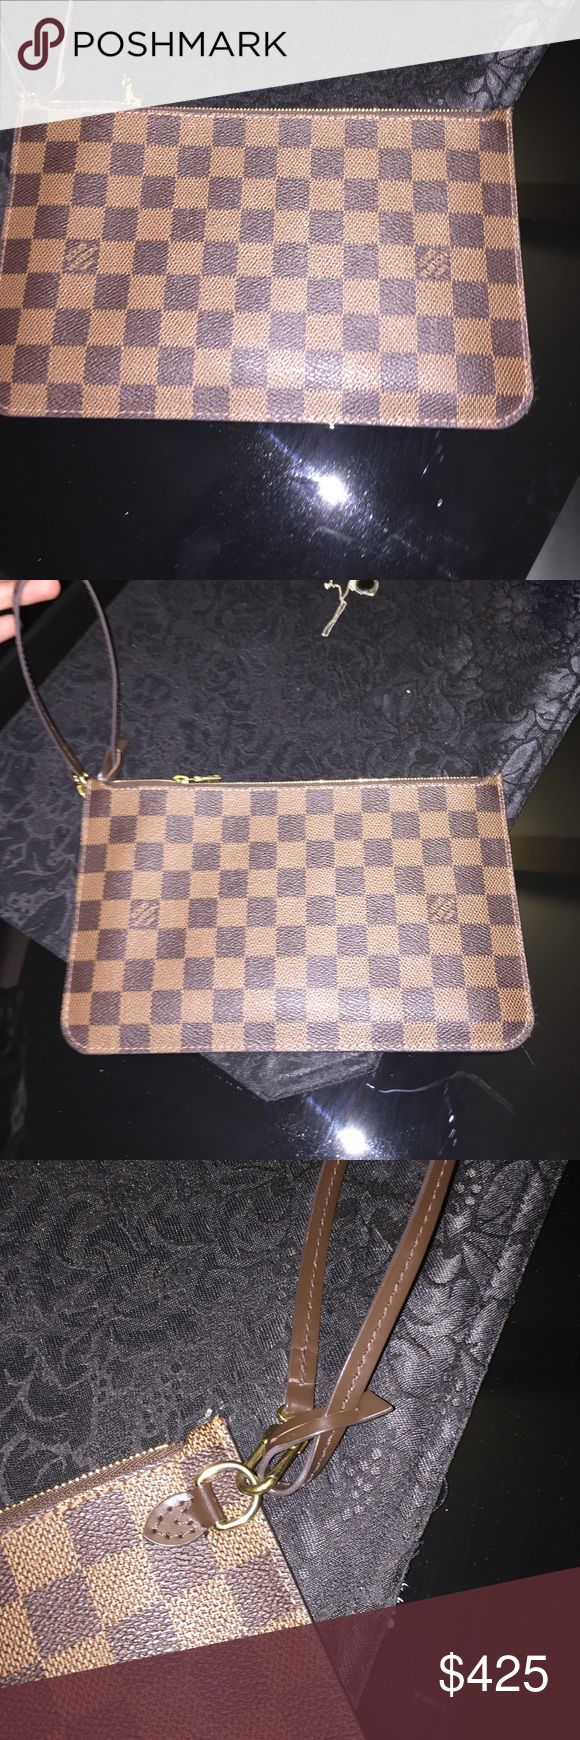 Brand new Louis Vuitton pouch It's brand new, authentic! Louis Vuitton Bags Clutches & Wristlets